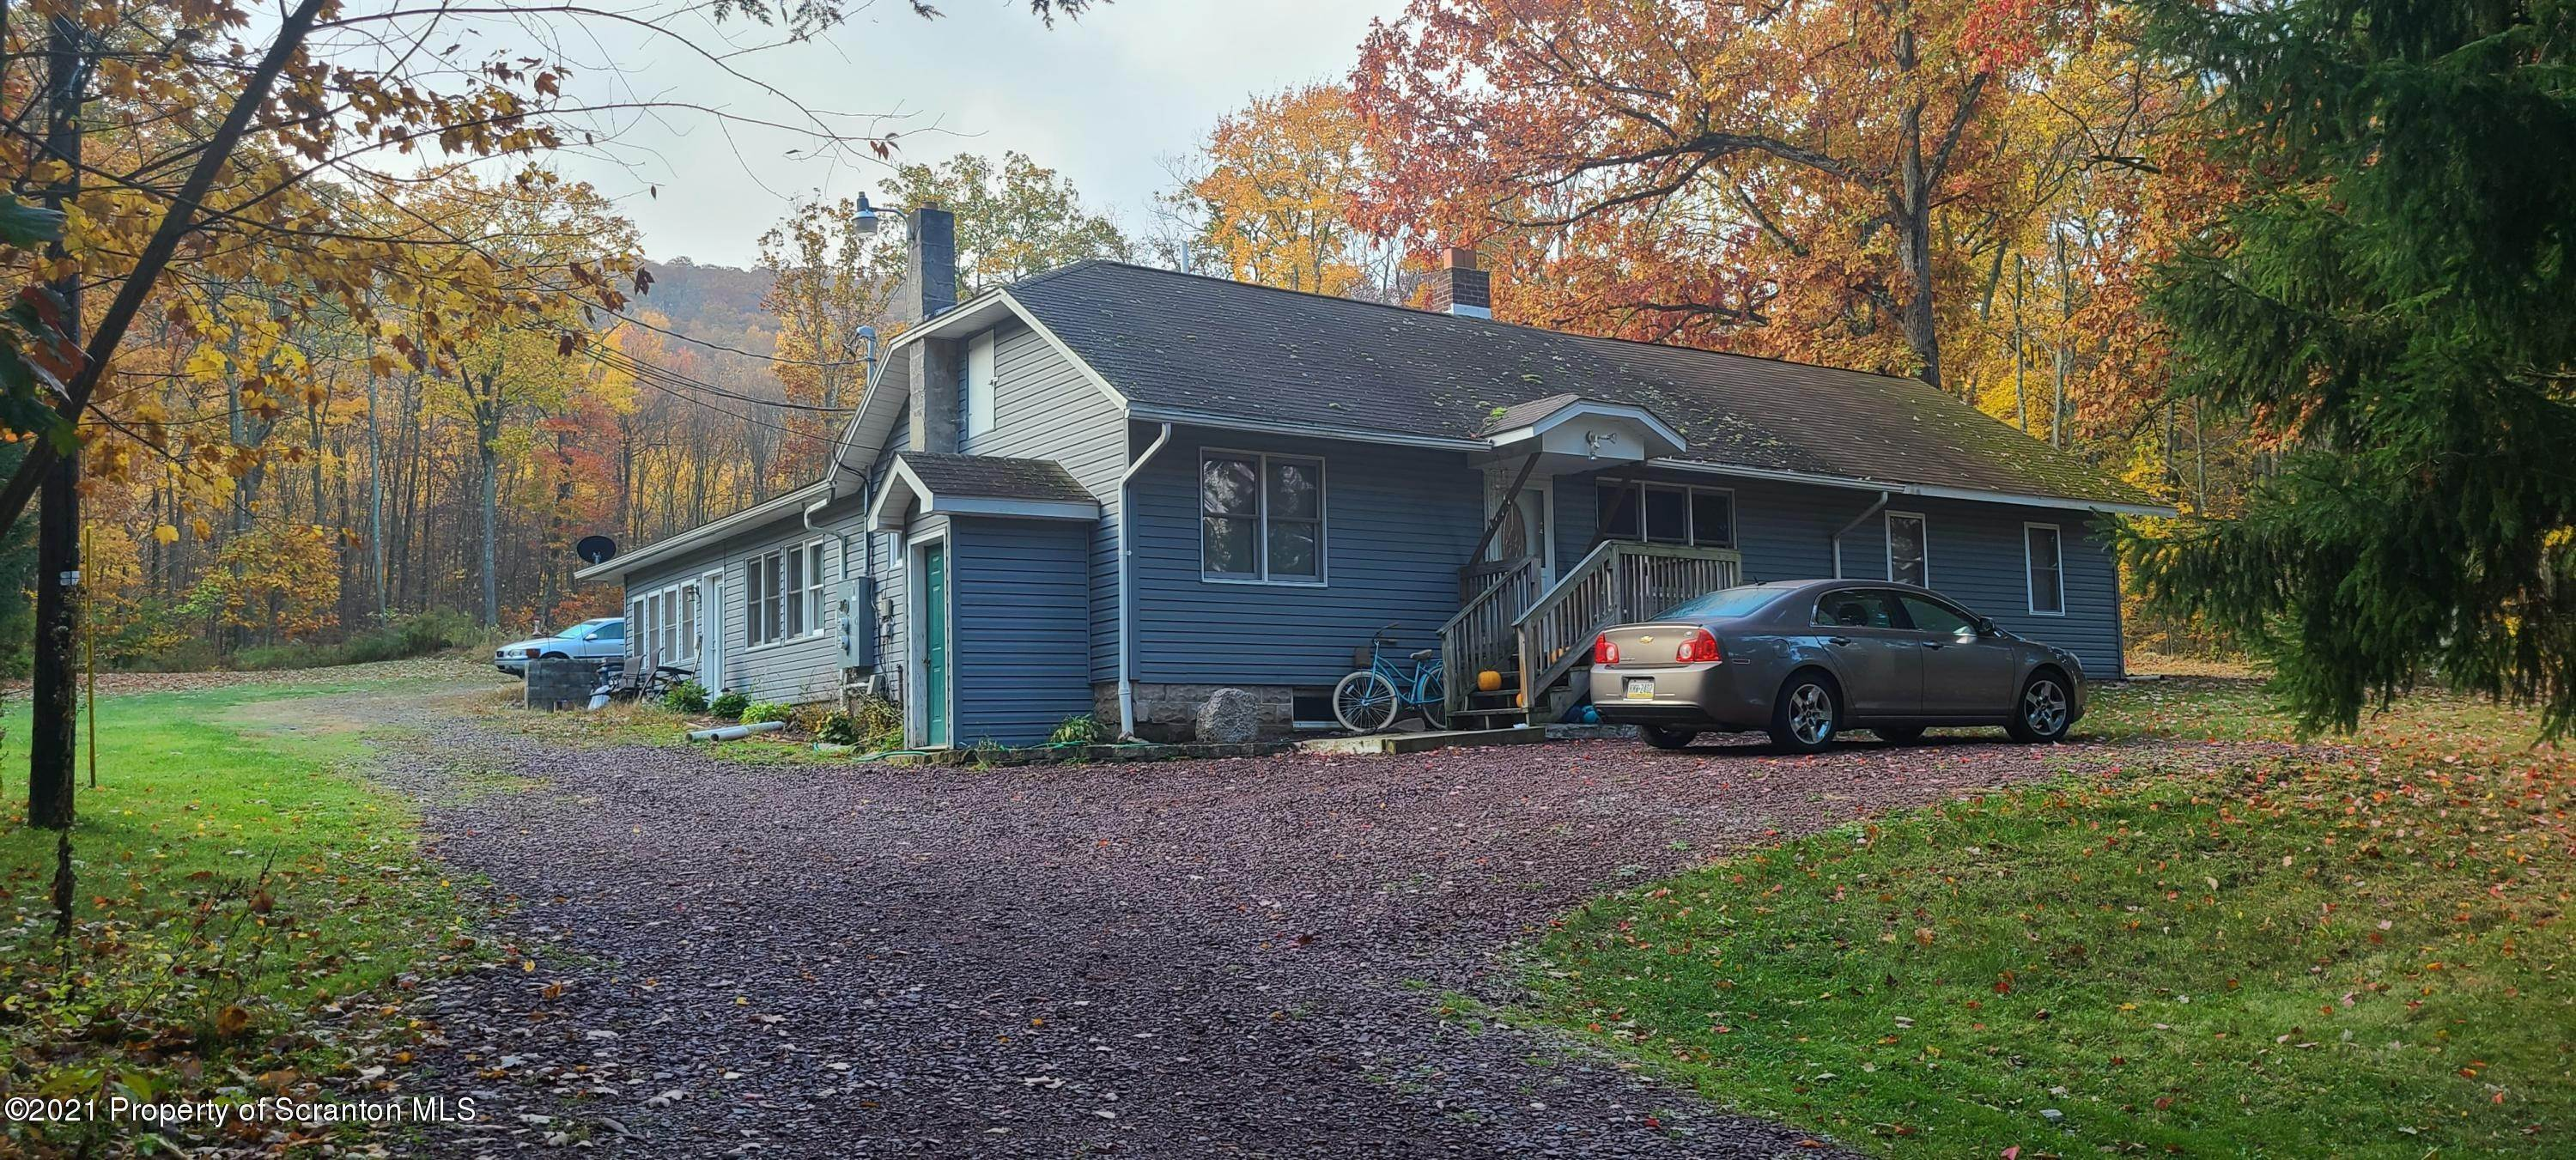 Property for Sale at 678 Mountain Blvd Mountain Top, Pennsylvania 18707 United States